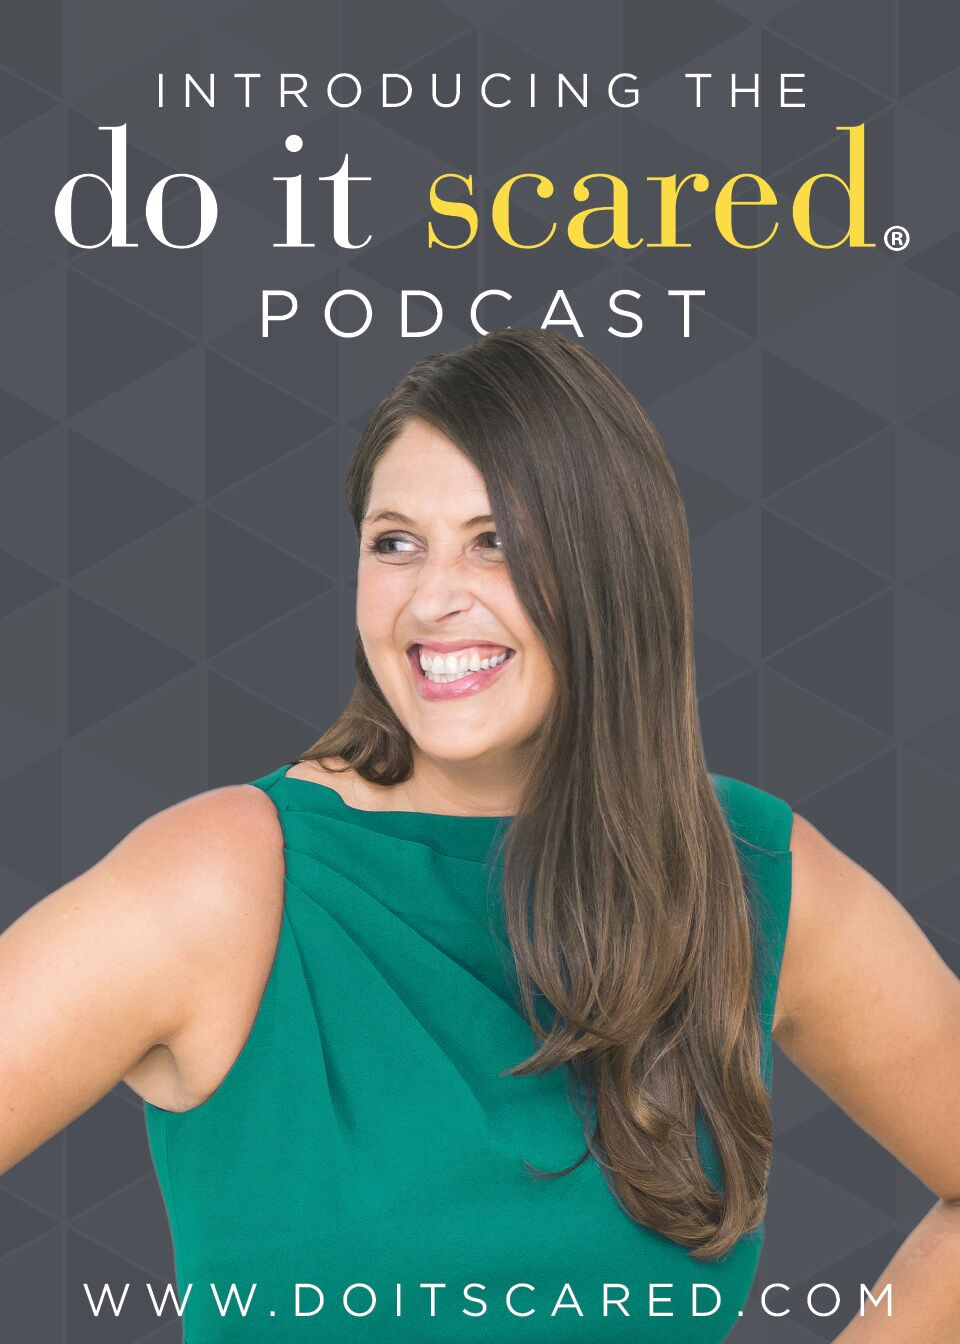 EP 0: Welcome to the Do It Scared™ Podcast